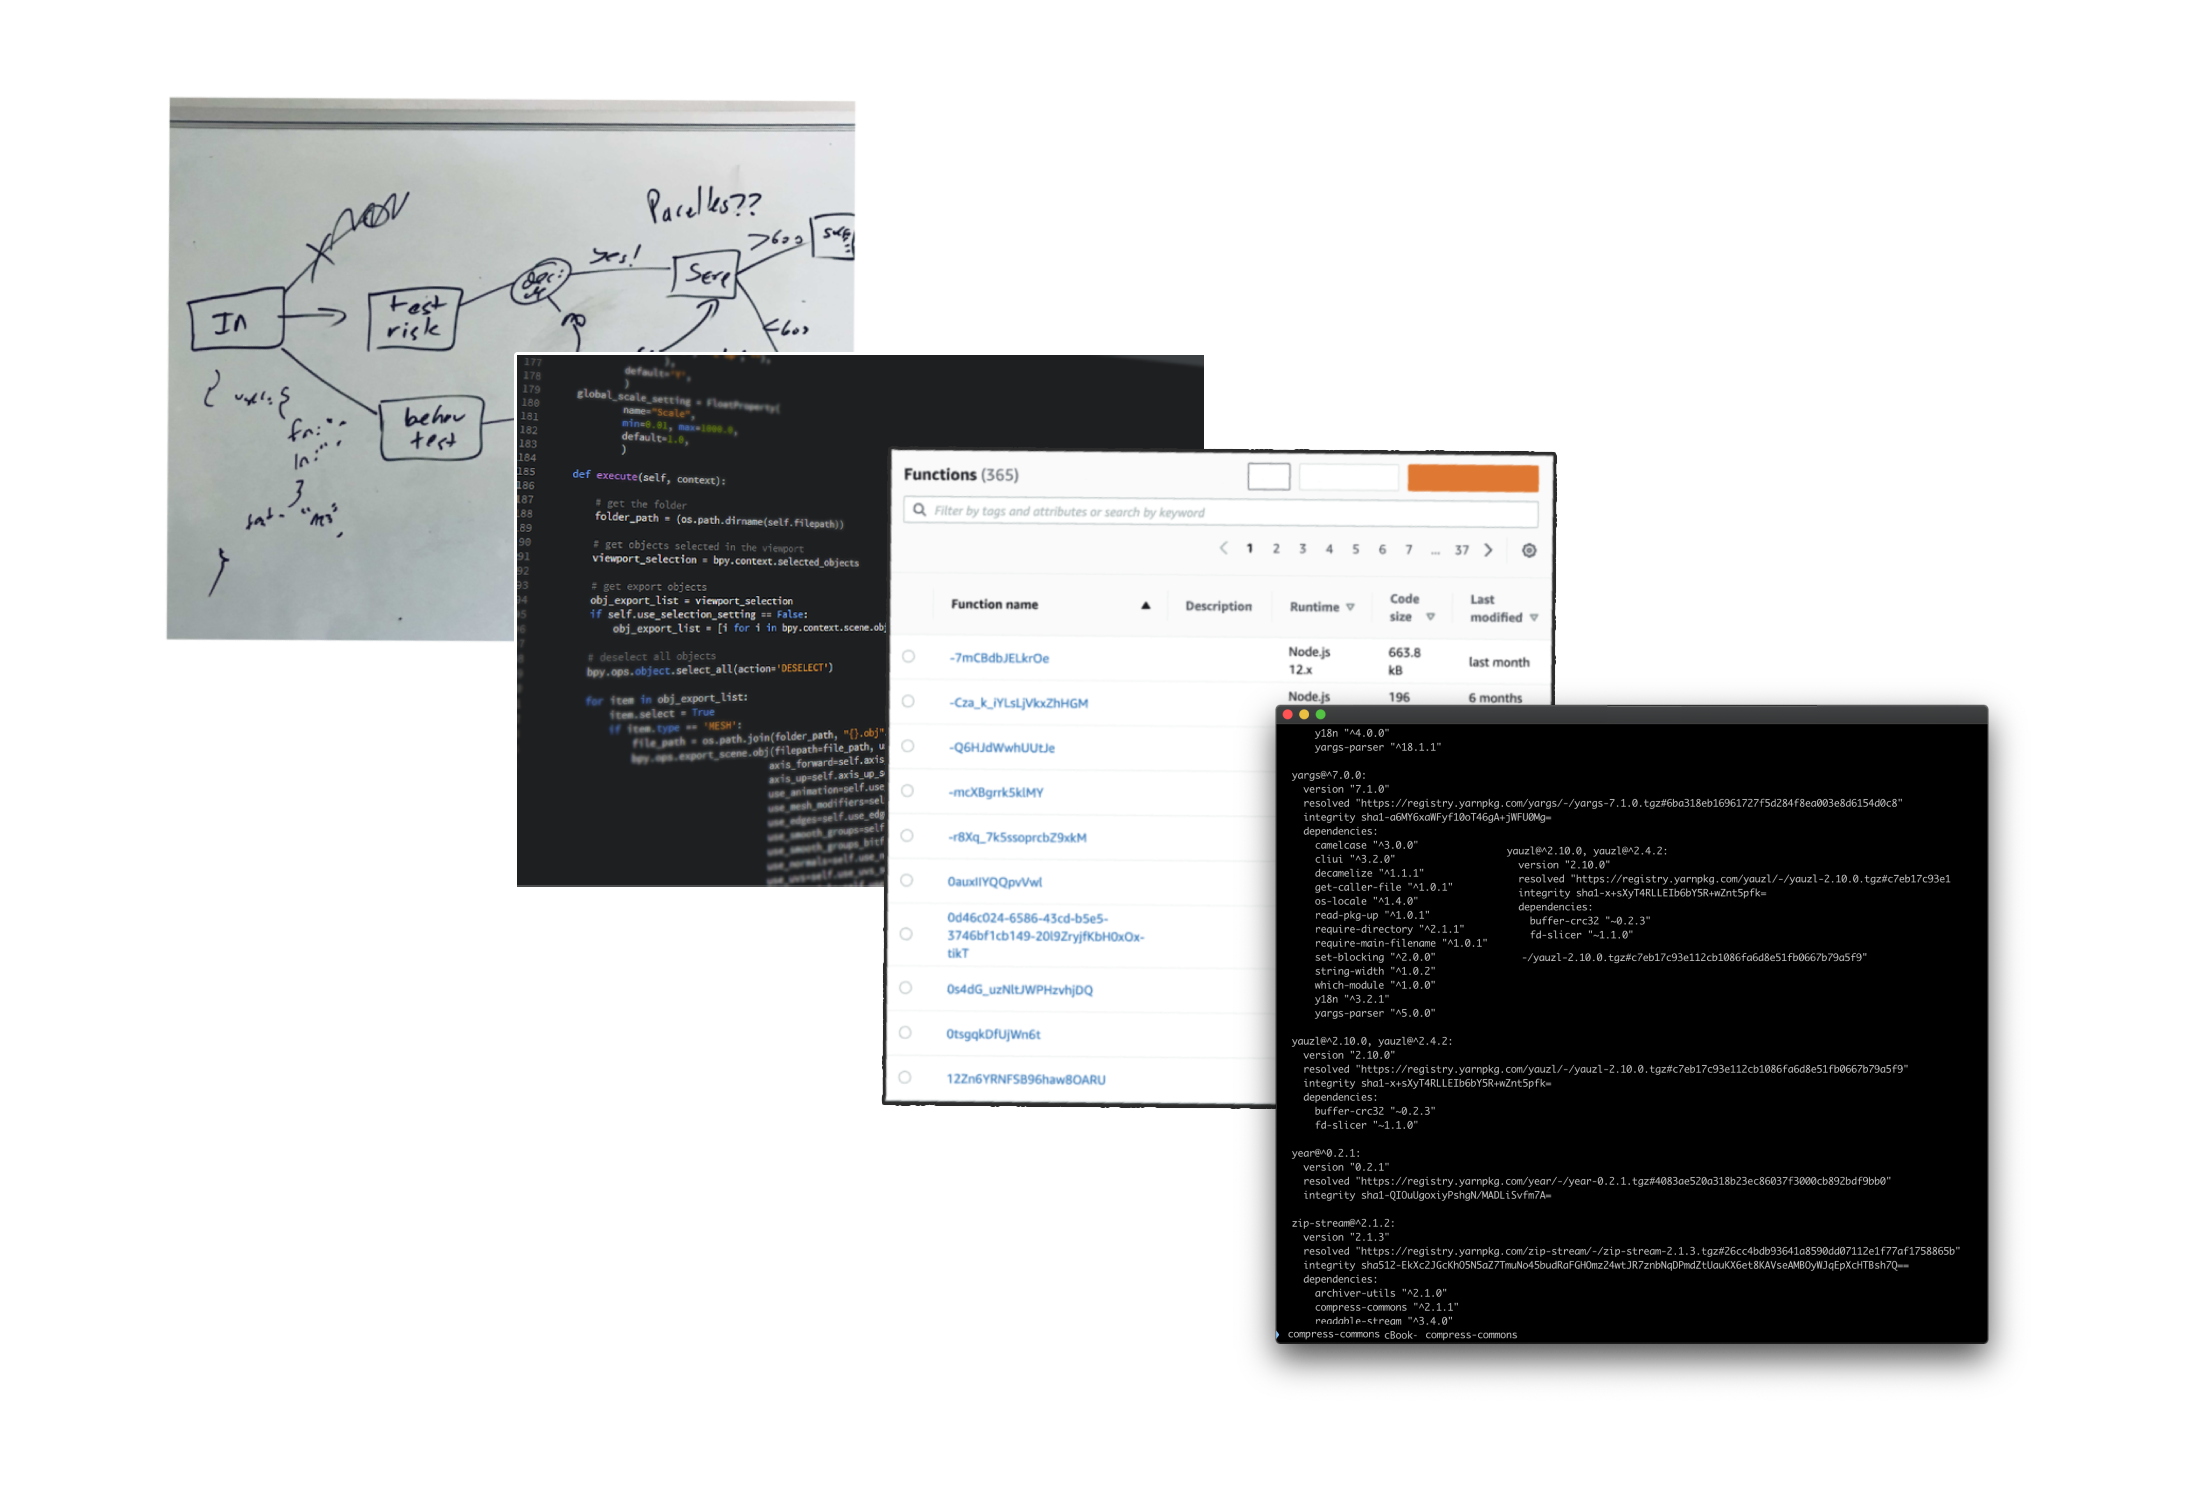 Architecture, whiteboards, log streams, AWS serverless, lambda and more - forget about using all of them!